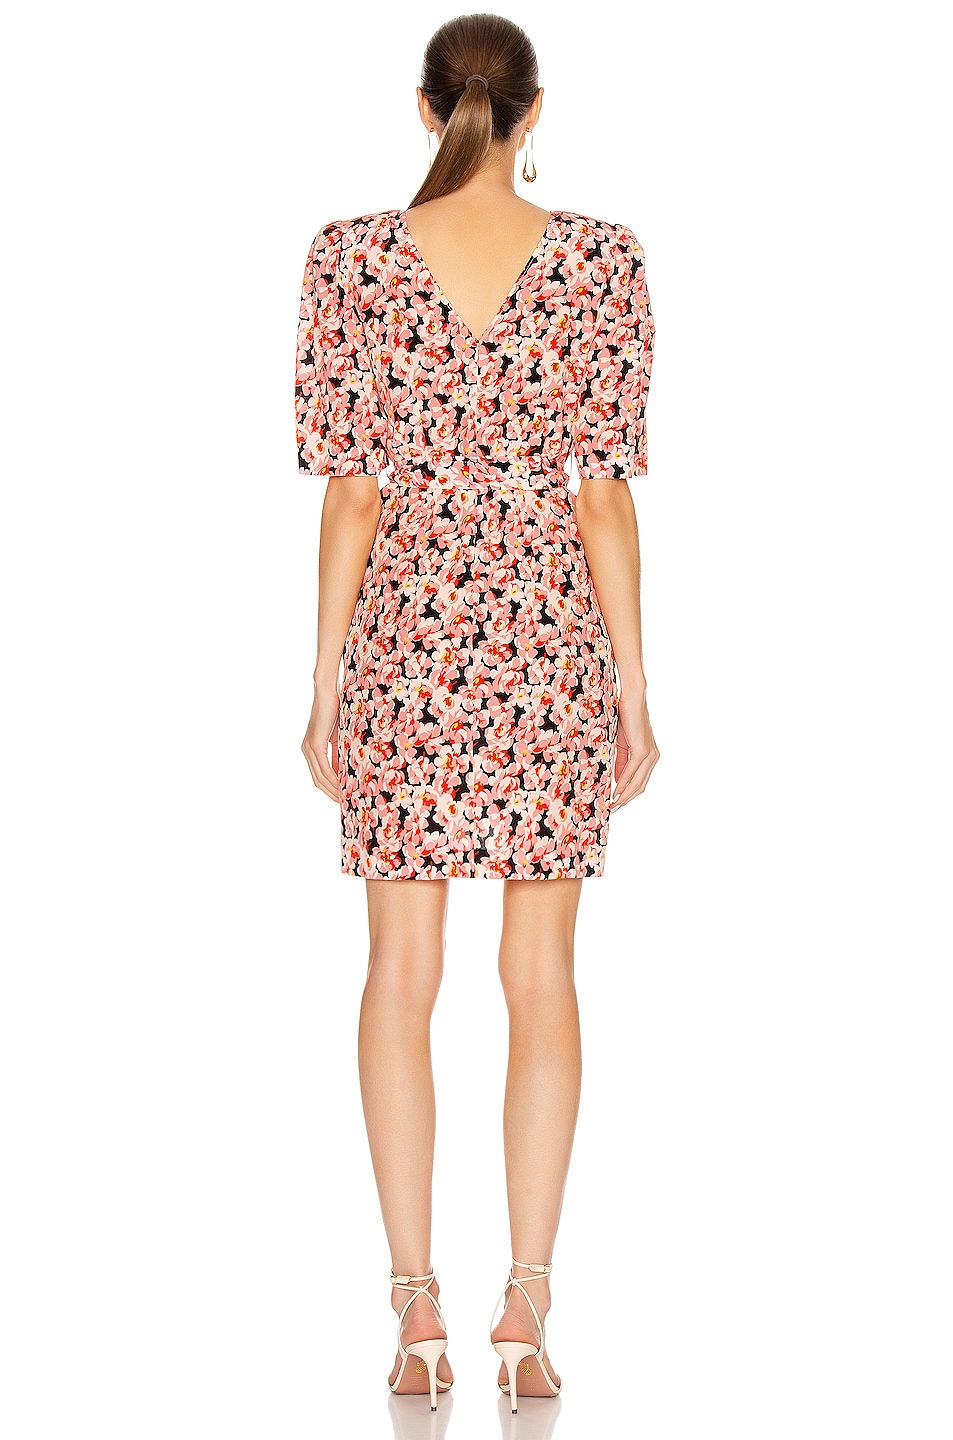 Image 3 of Stella McCartney Blossom Dress in Multicolor Pink